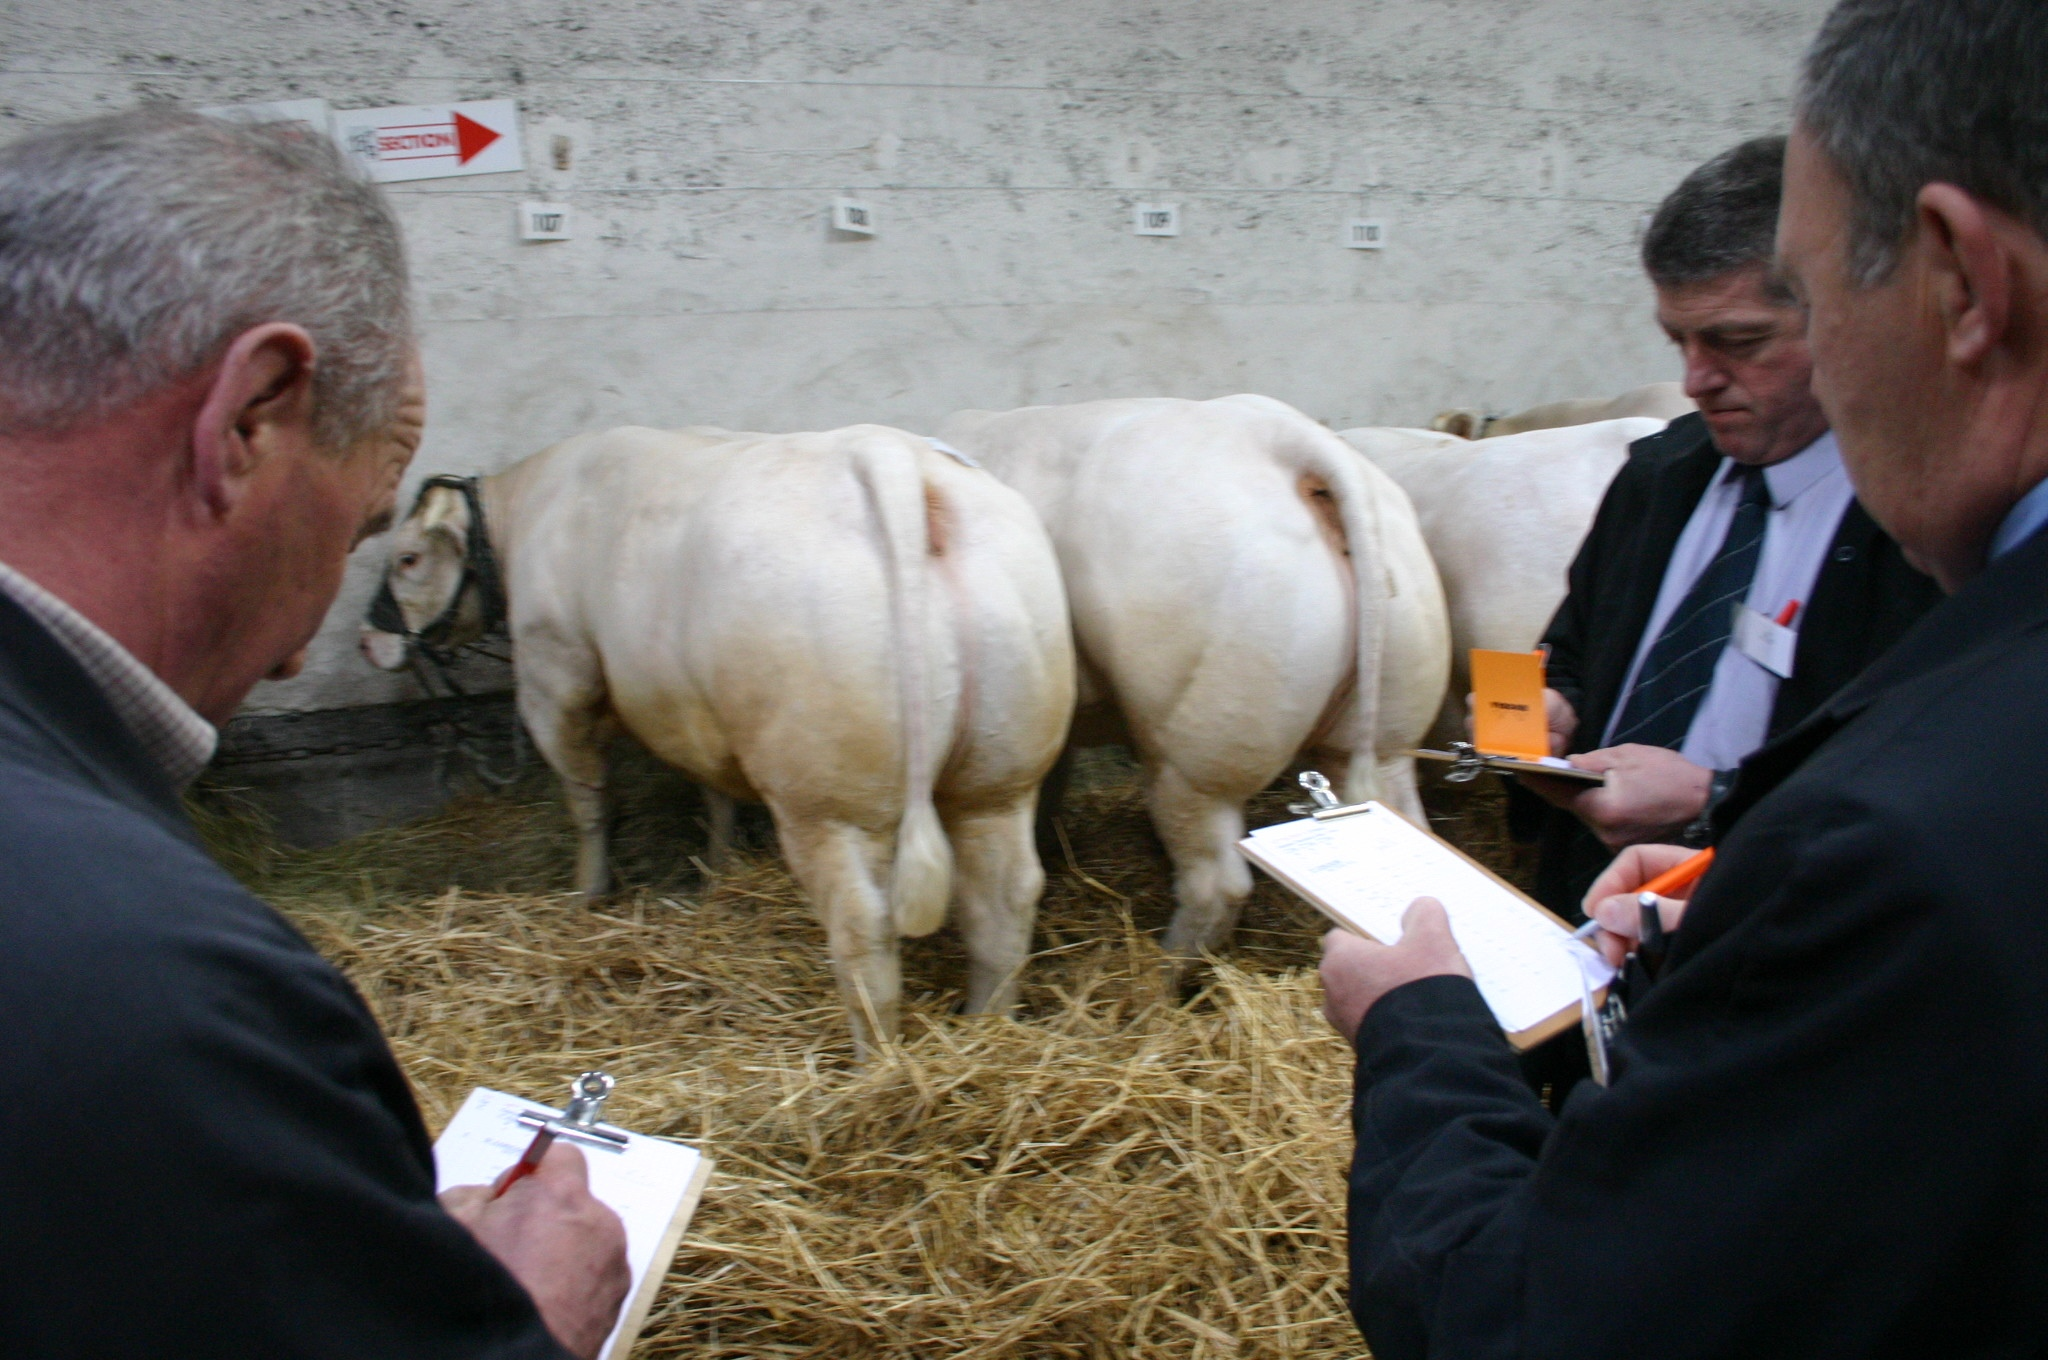 expo_anx_bouch_charolais_3